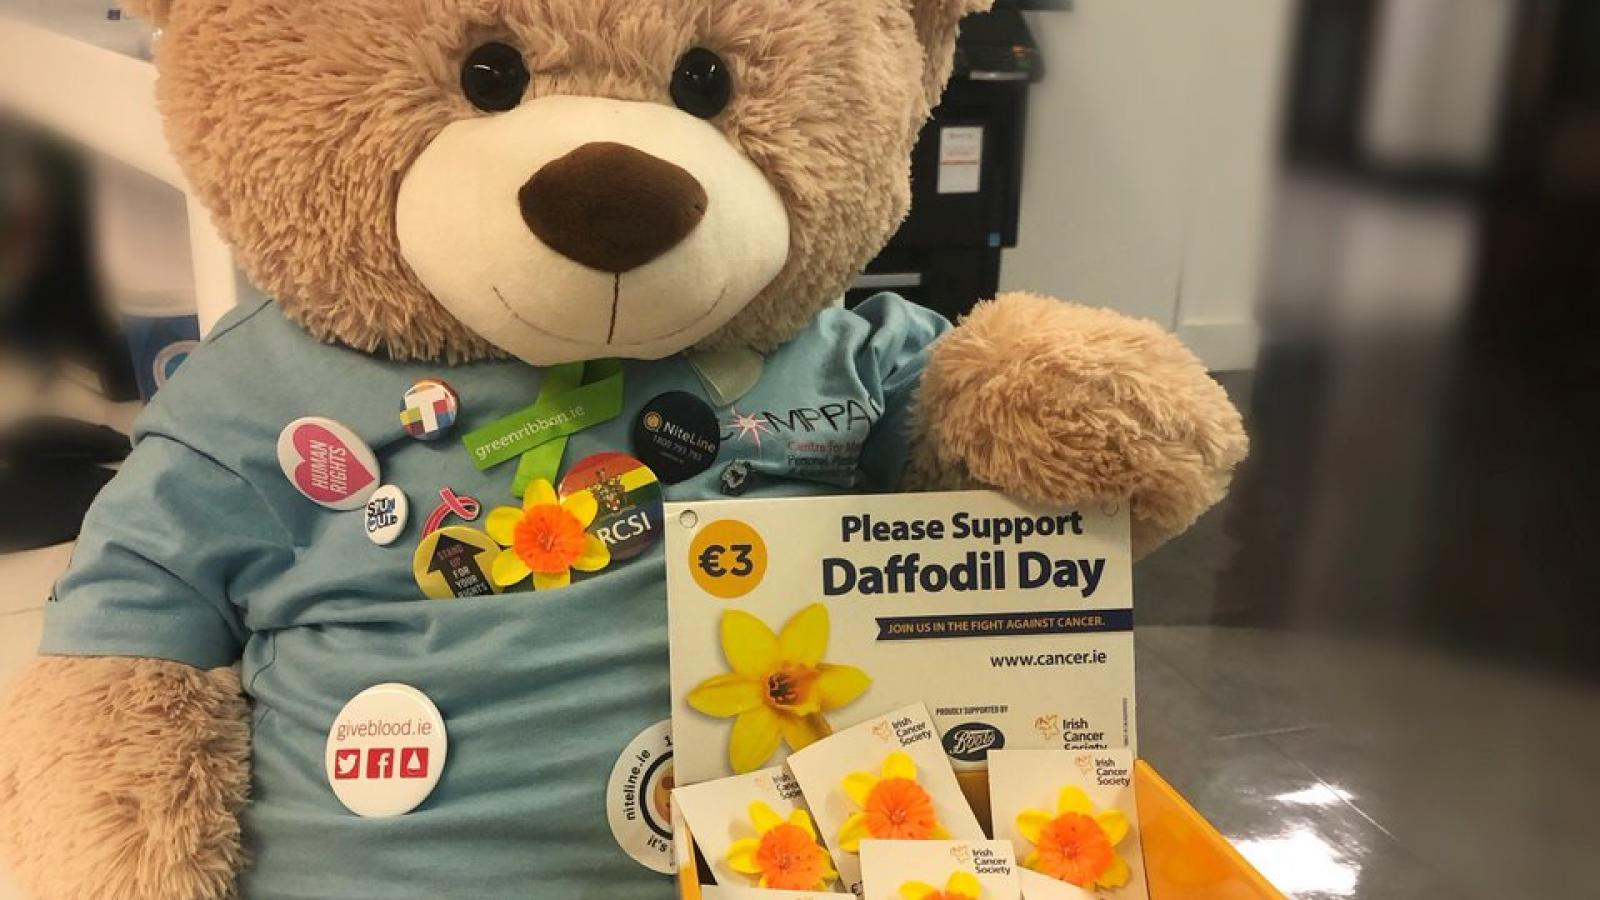 Daffodil Day teddy bear and collection box